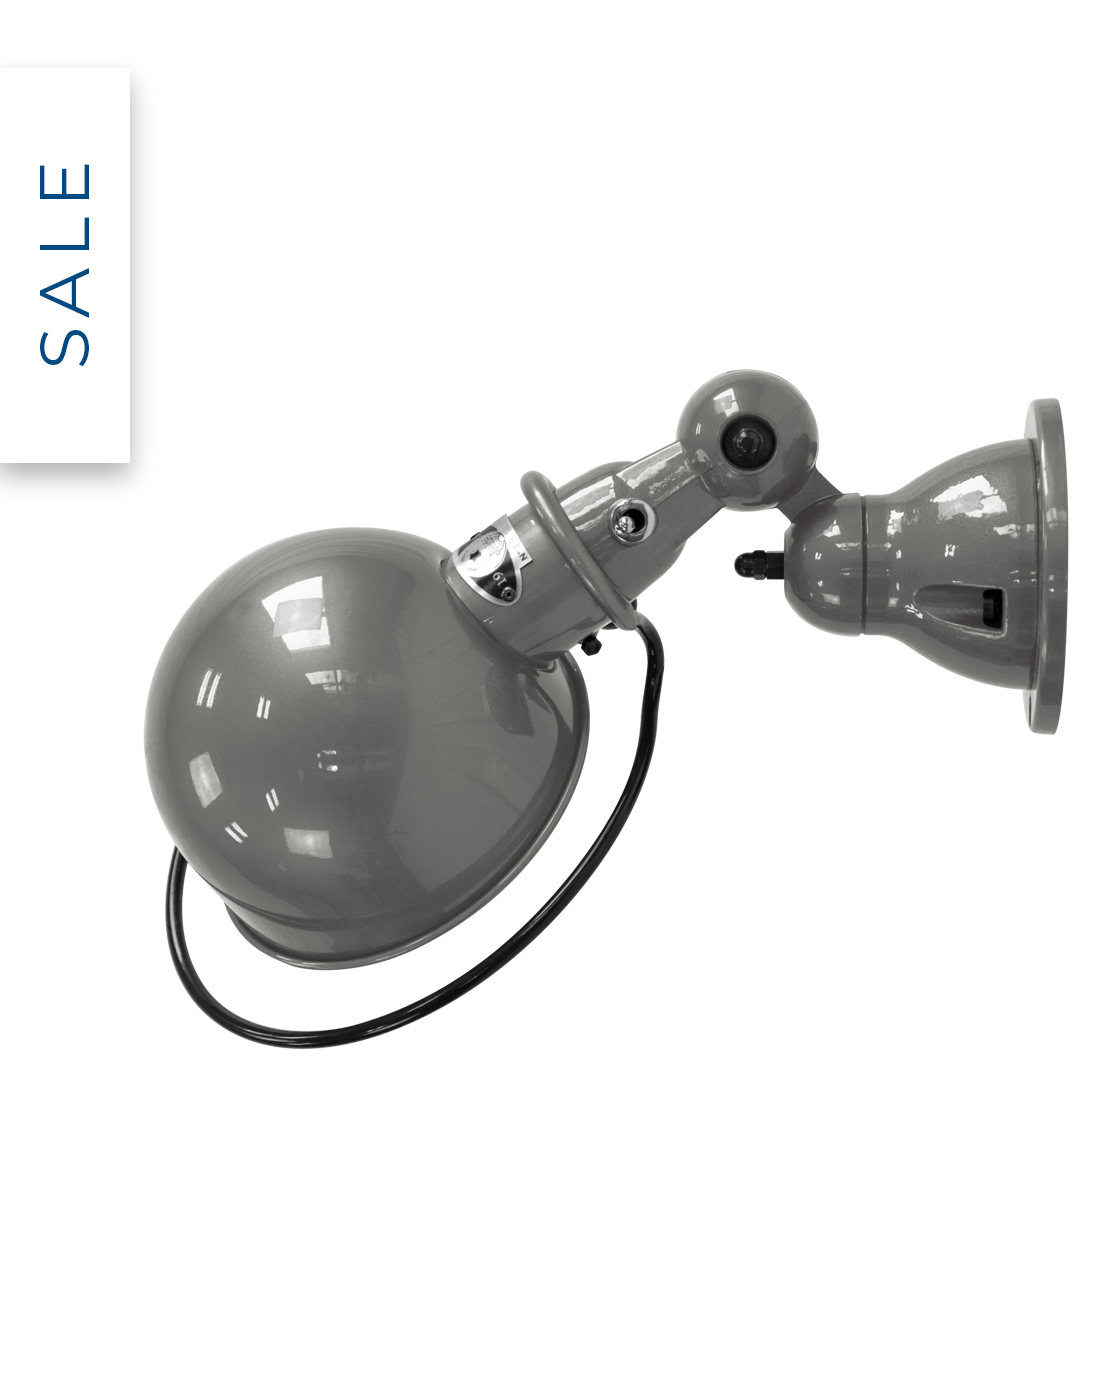 Loft flush wall light by Jielde with 40% off